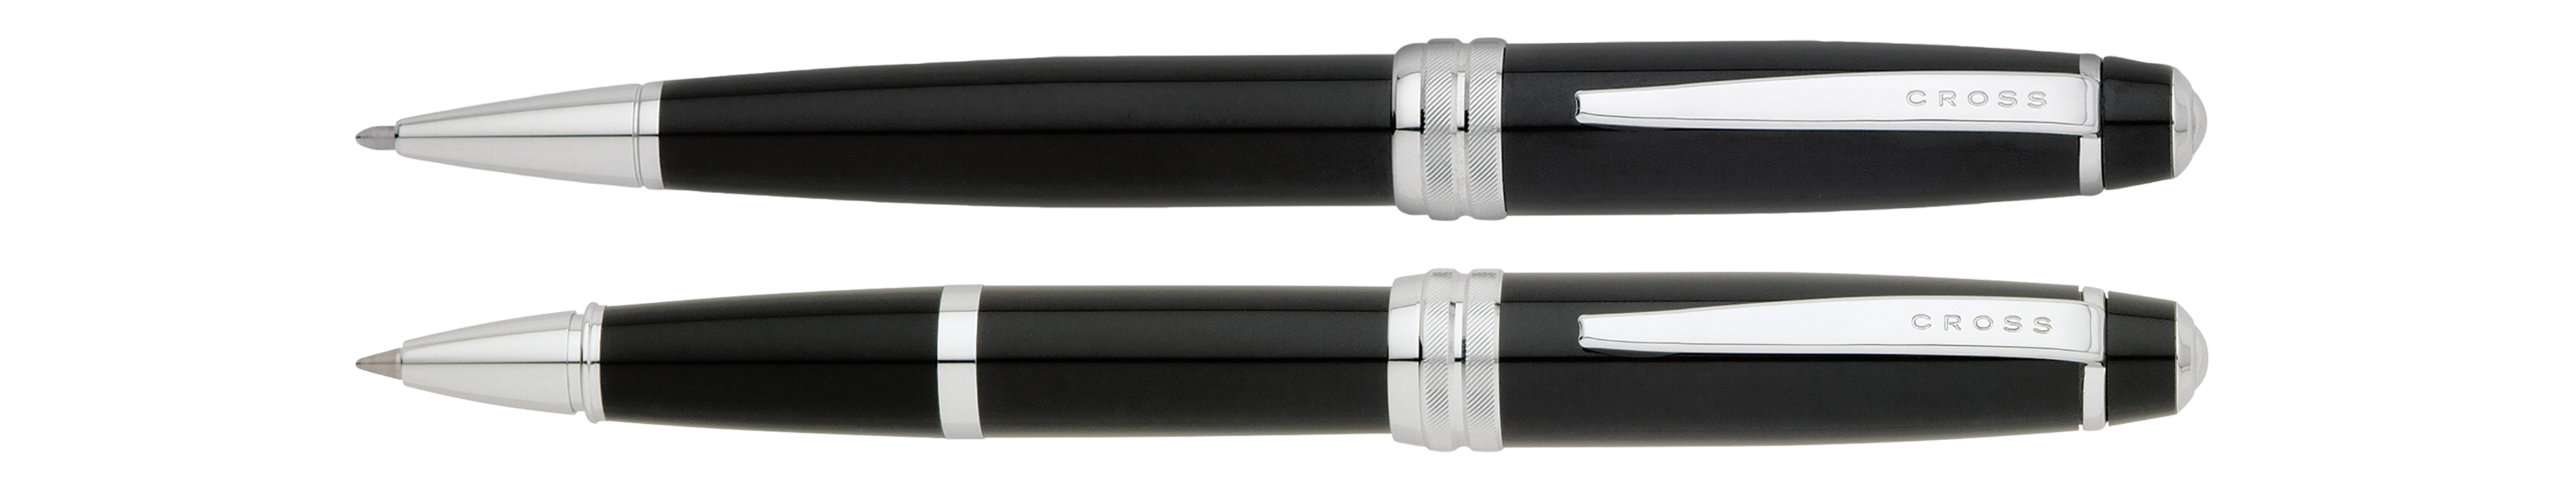 Bailey Black Lacquer Ballpoint and Rollerball Pen Set